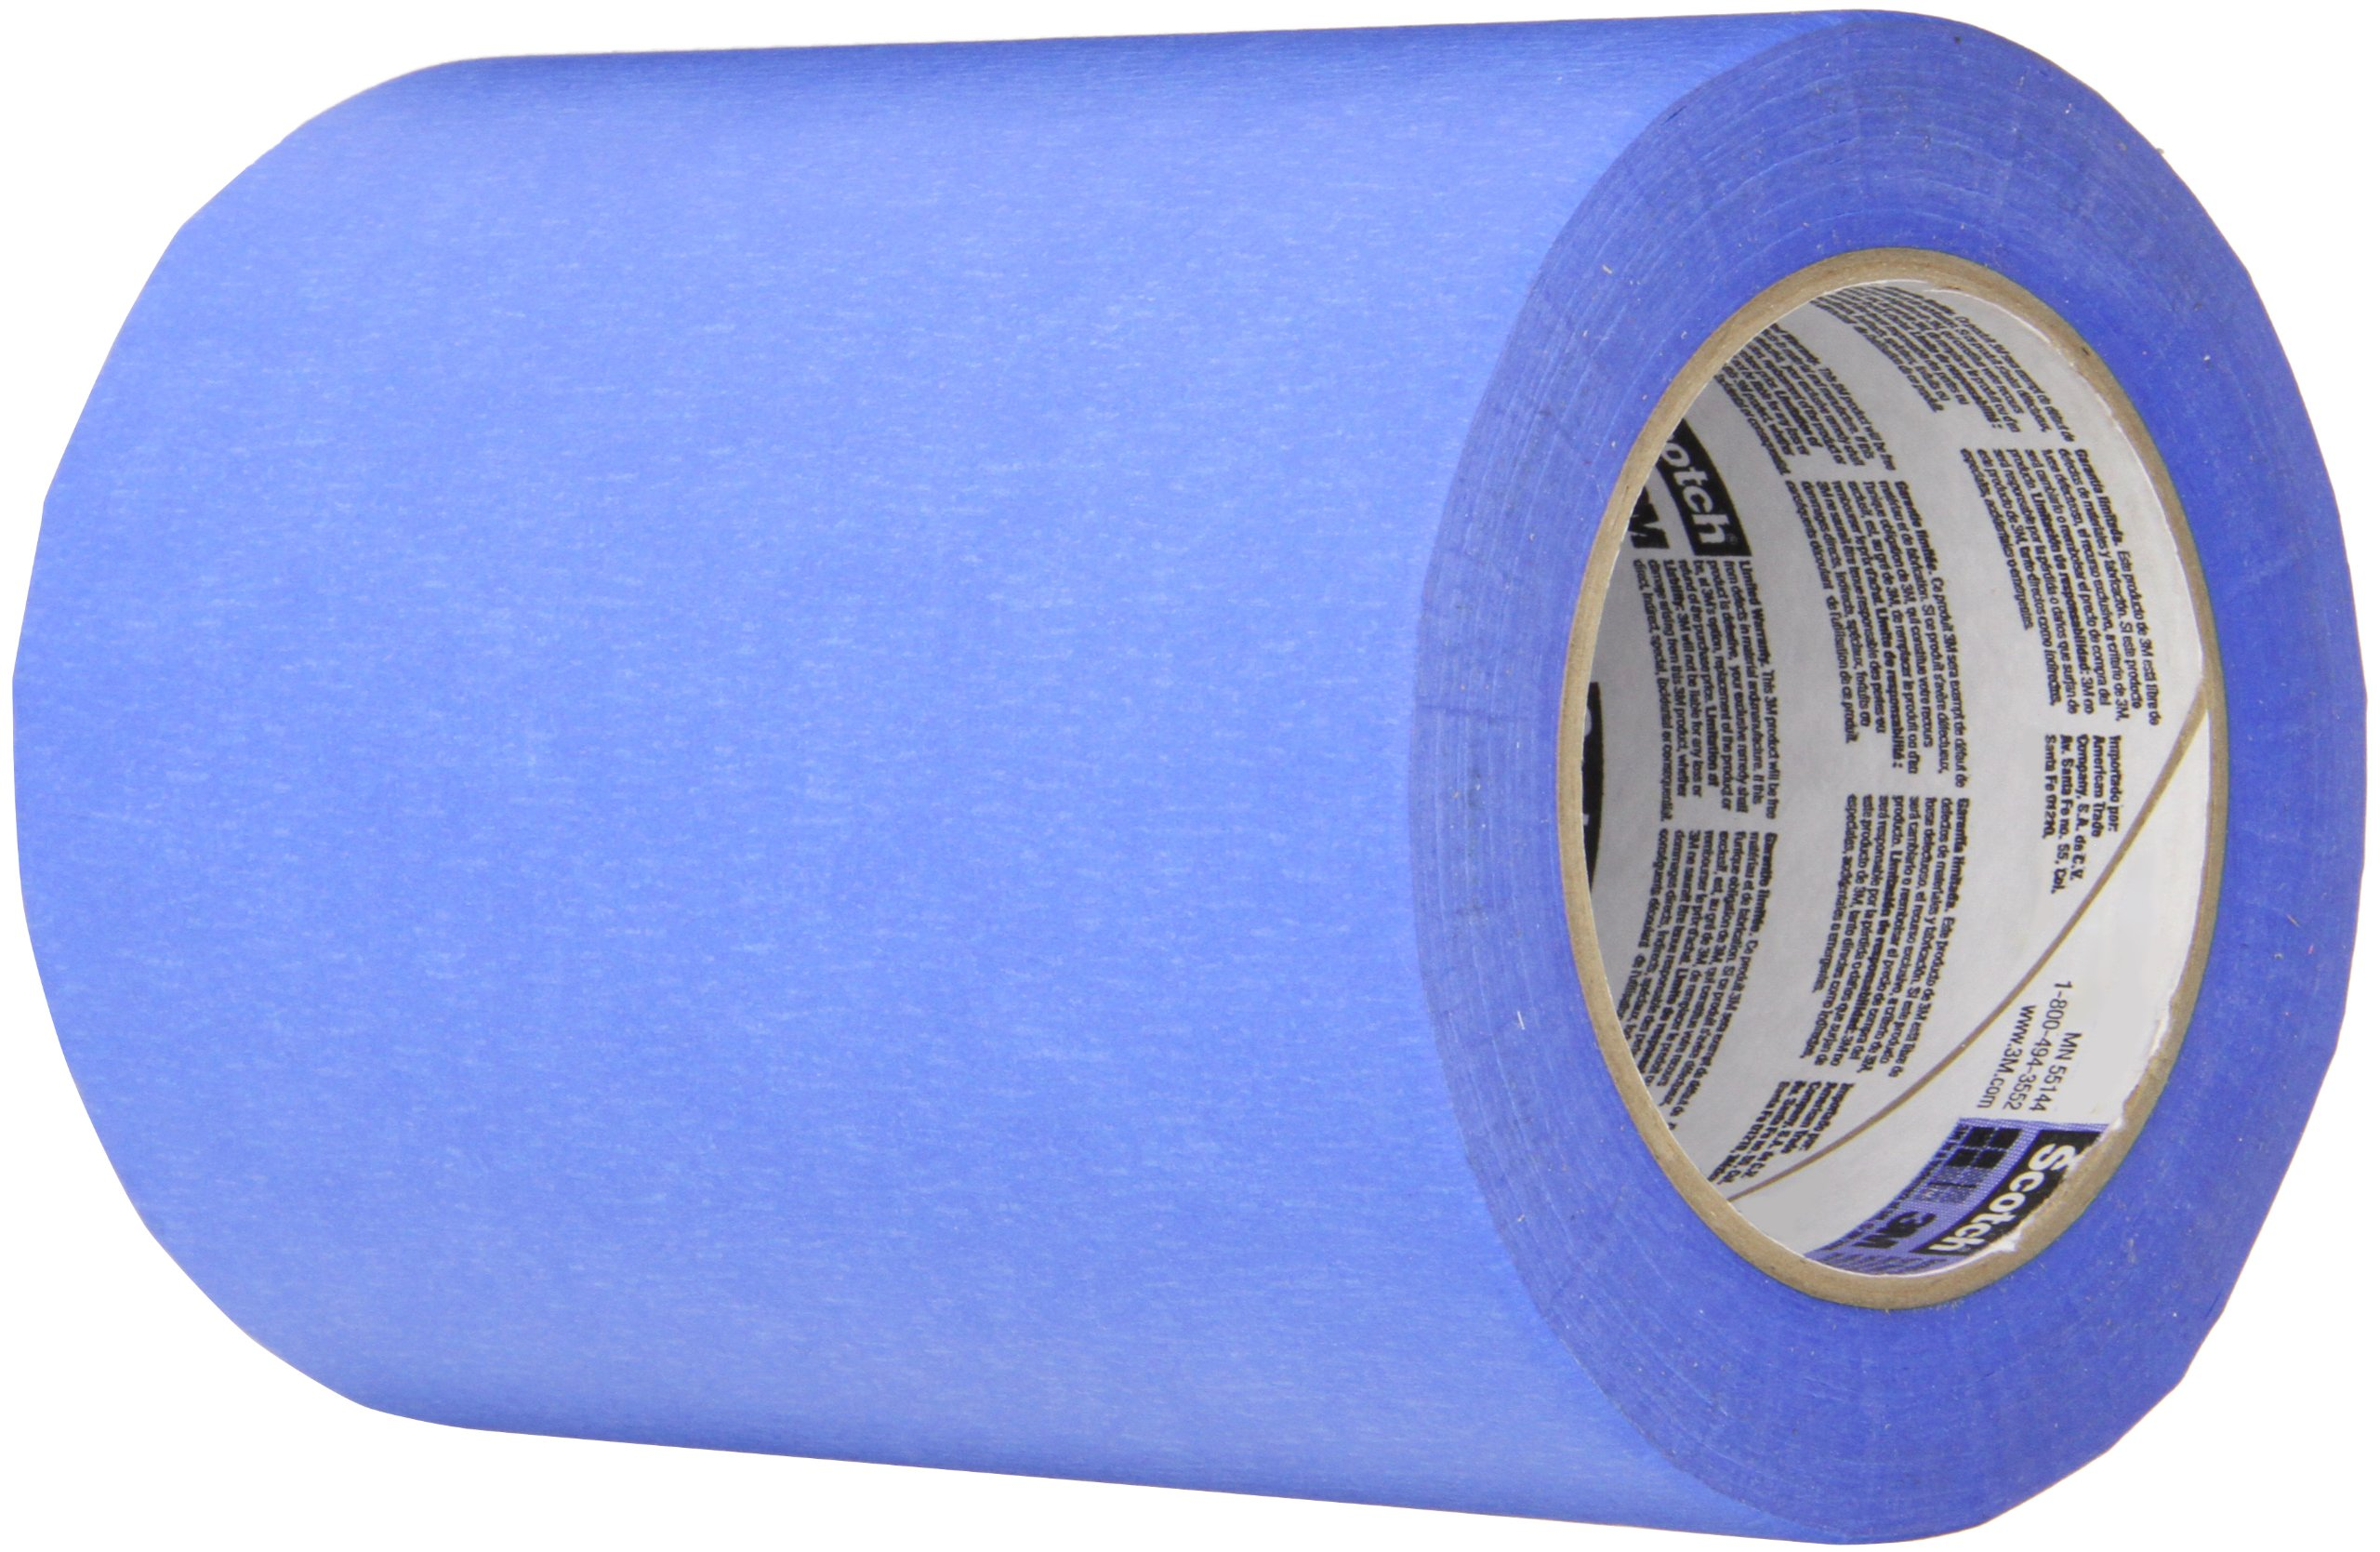 3M 2090 Scotch-Blue Painters Tape, 6'' width x 60yd length (1 roll)